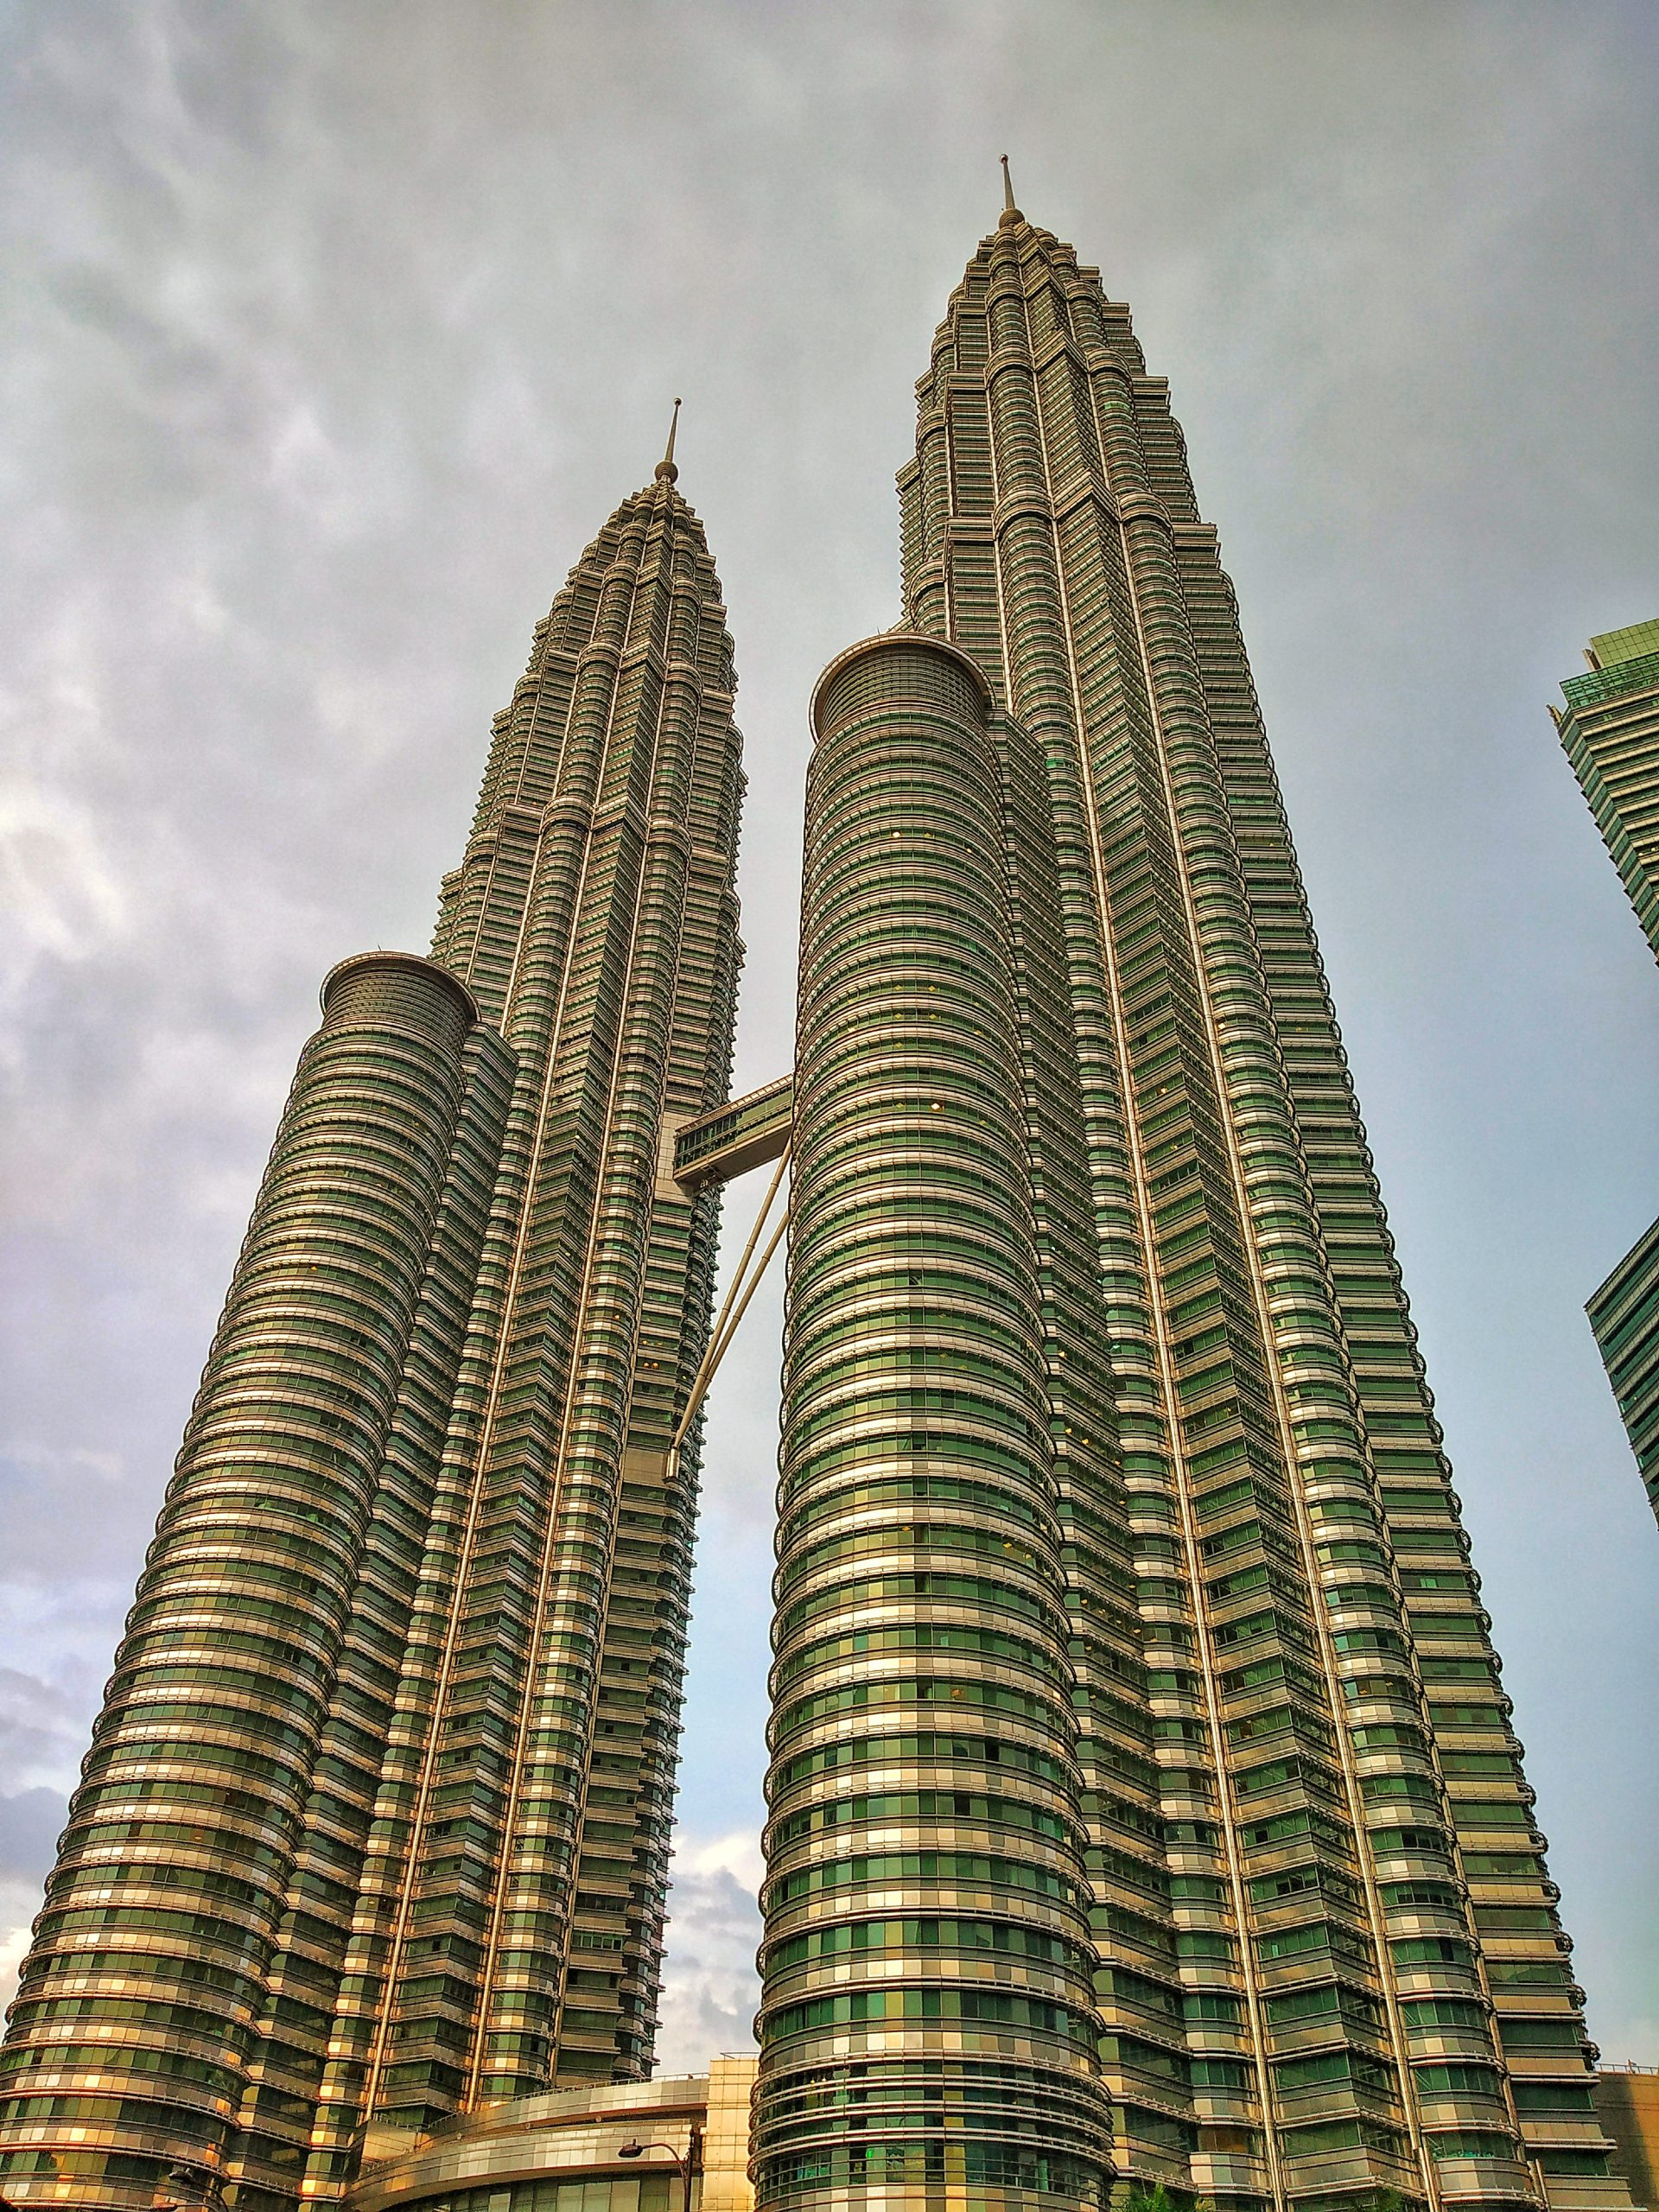 The Petronas Twin Tower